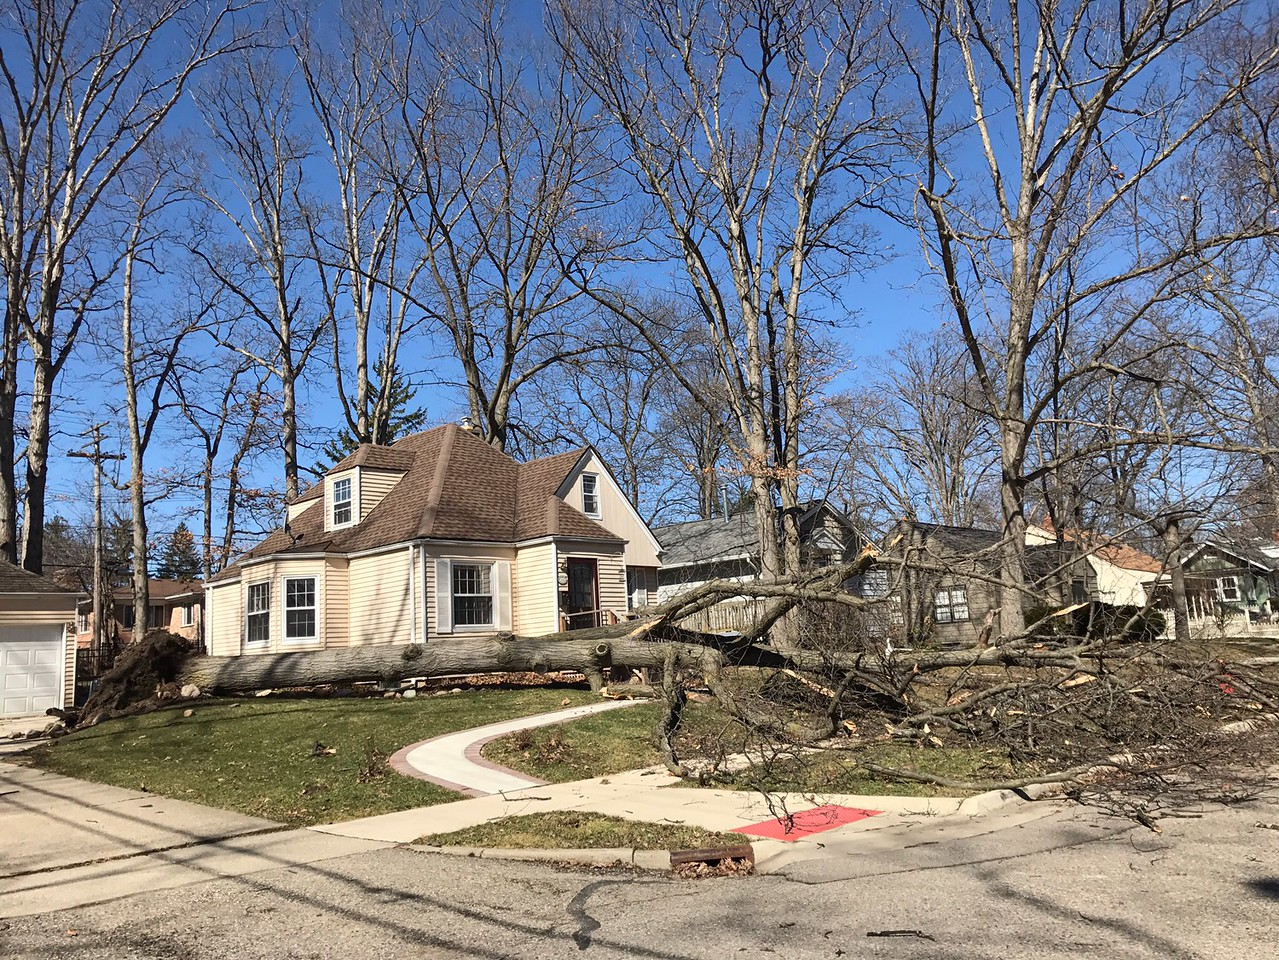 A large tree was uprooted in a Ann Arbor yard on Wednesday, March 8, 2017. (Photo provided)